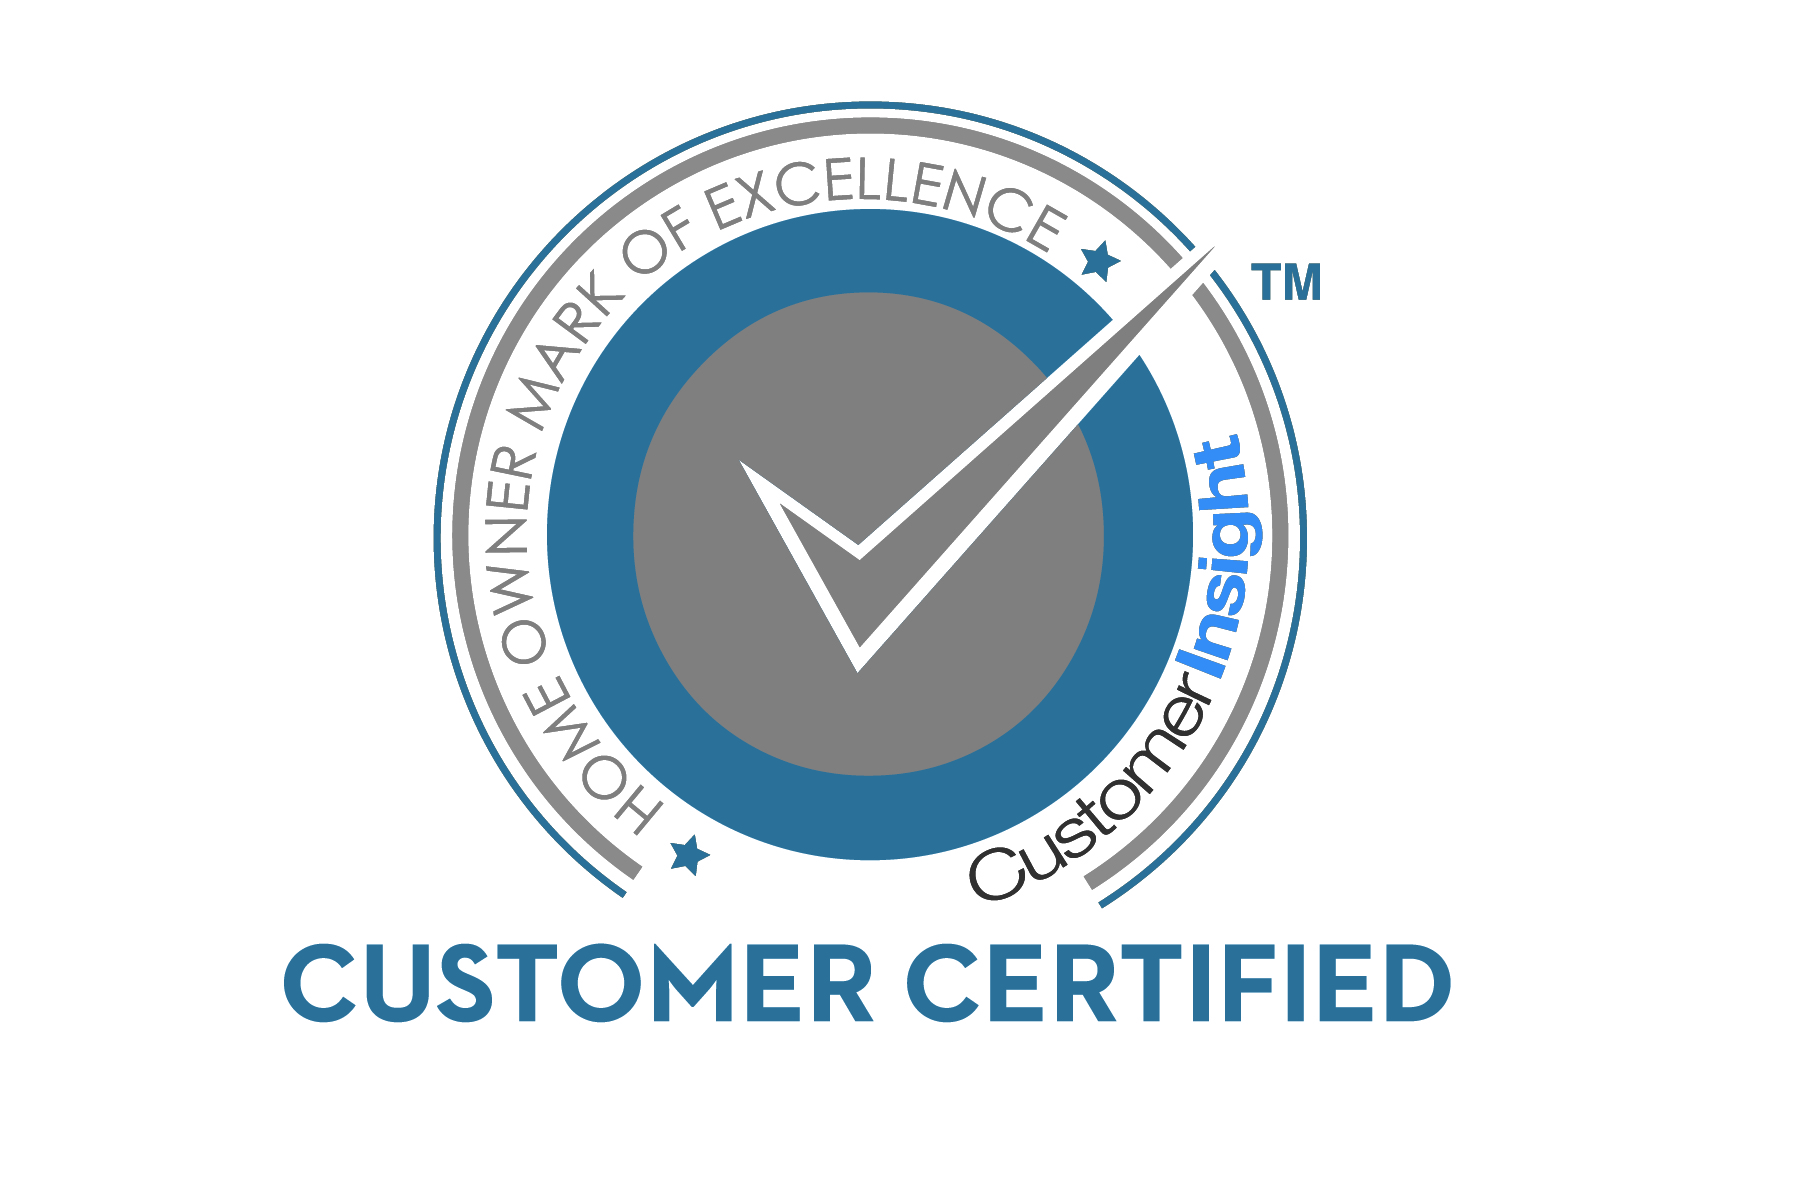 Customer Certified-01.jpg